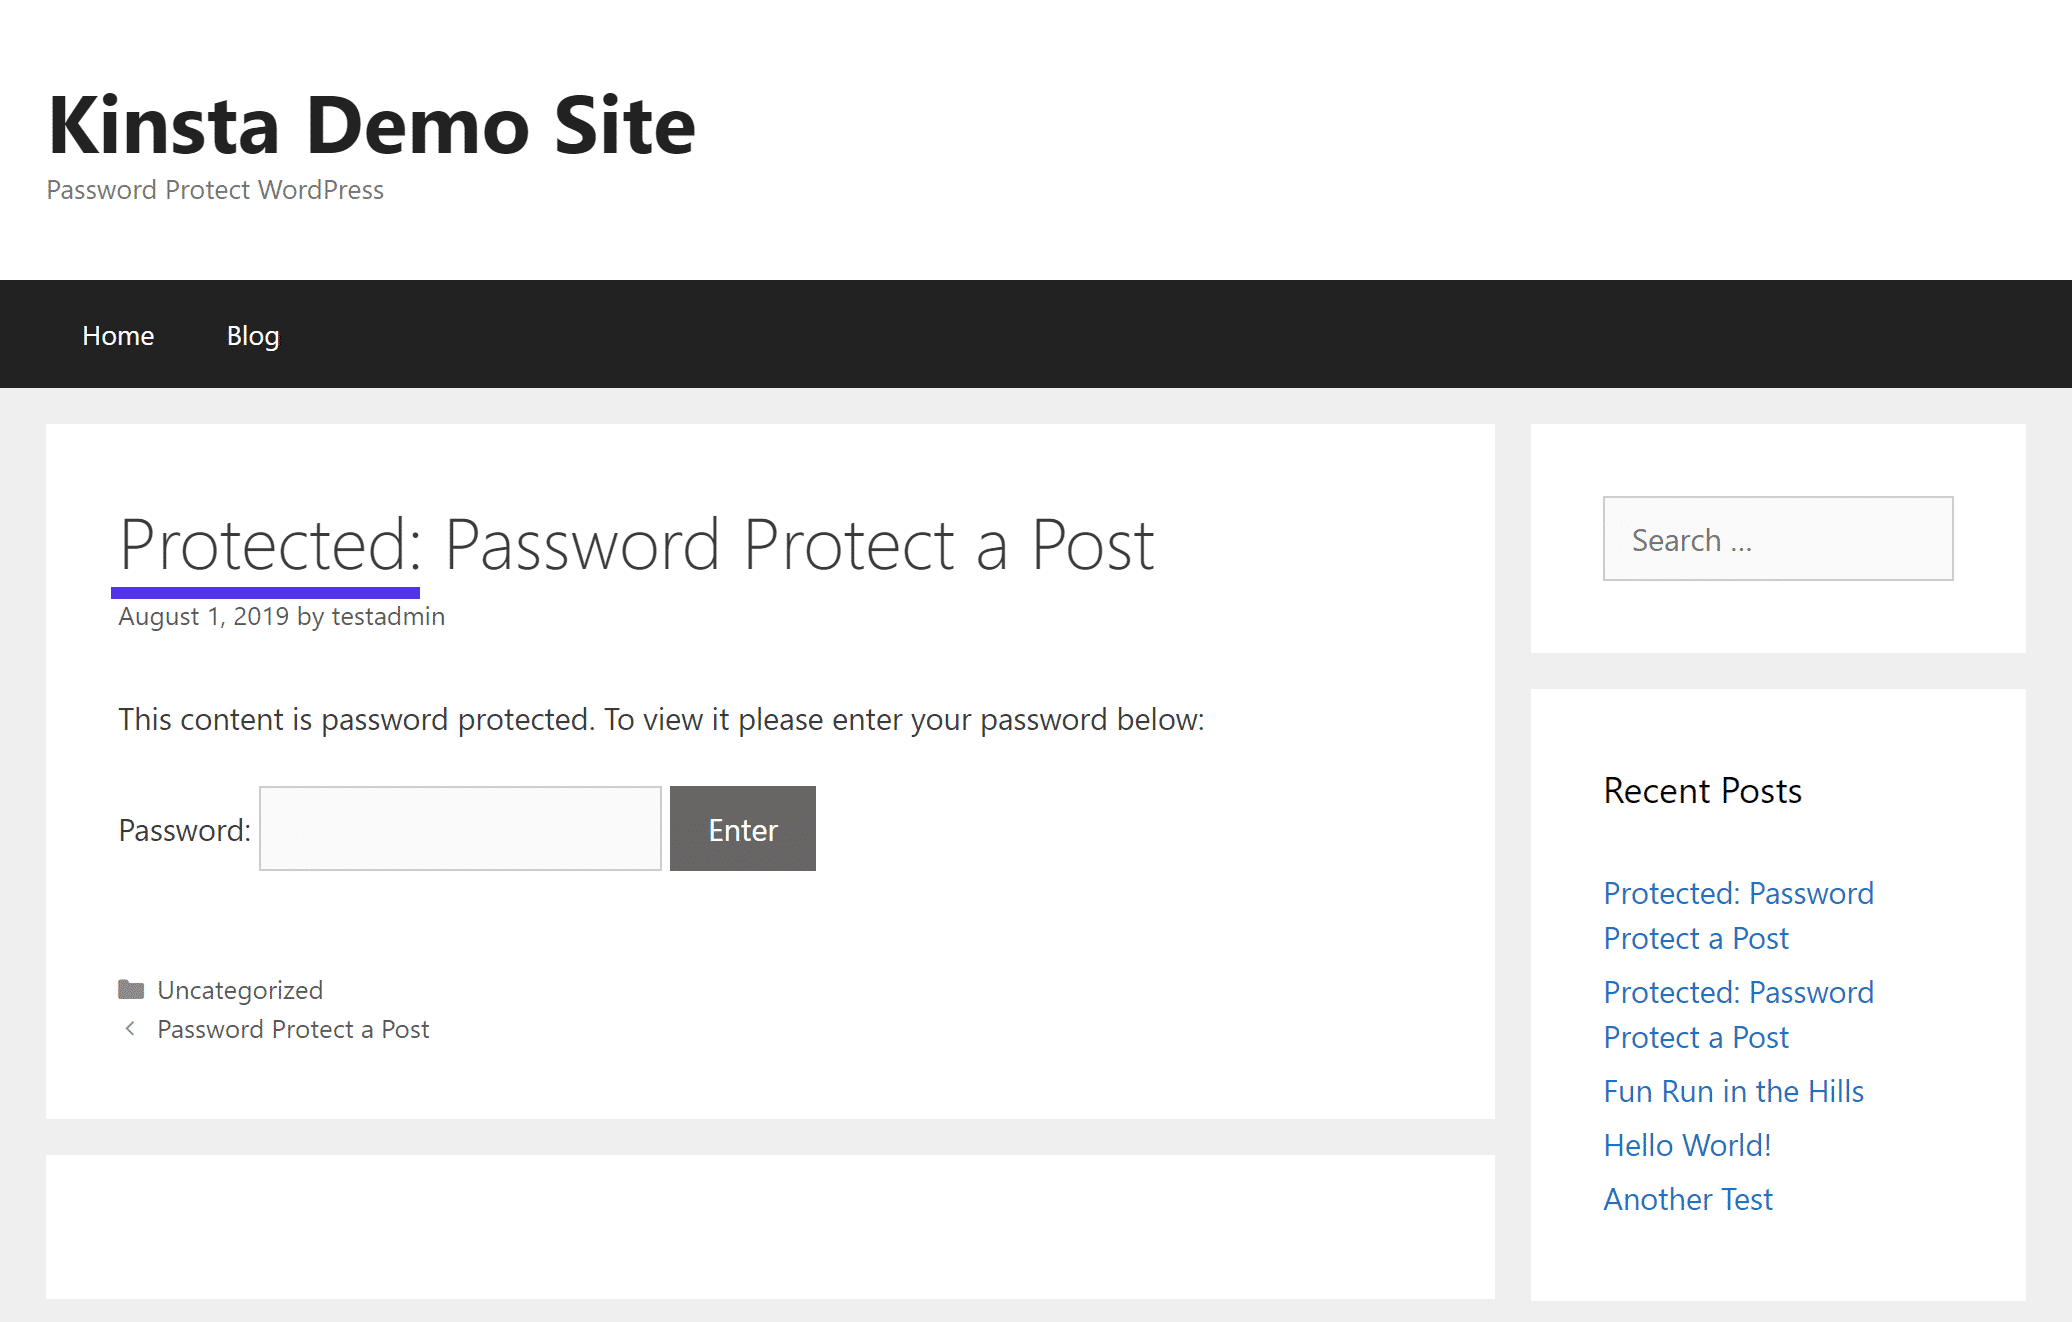 How the built-in WordPress password protection works